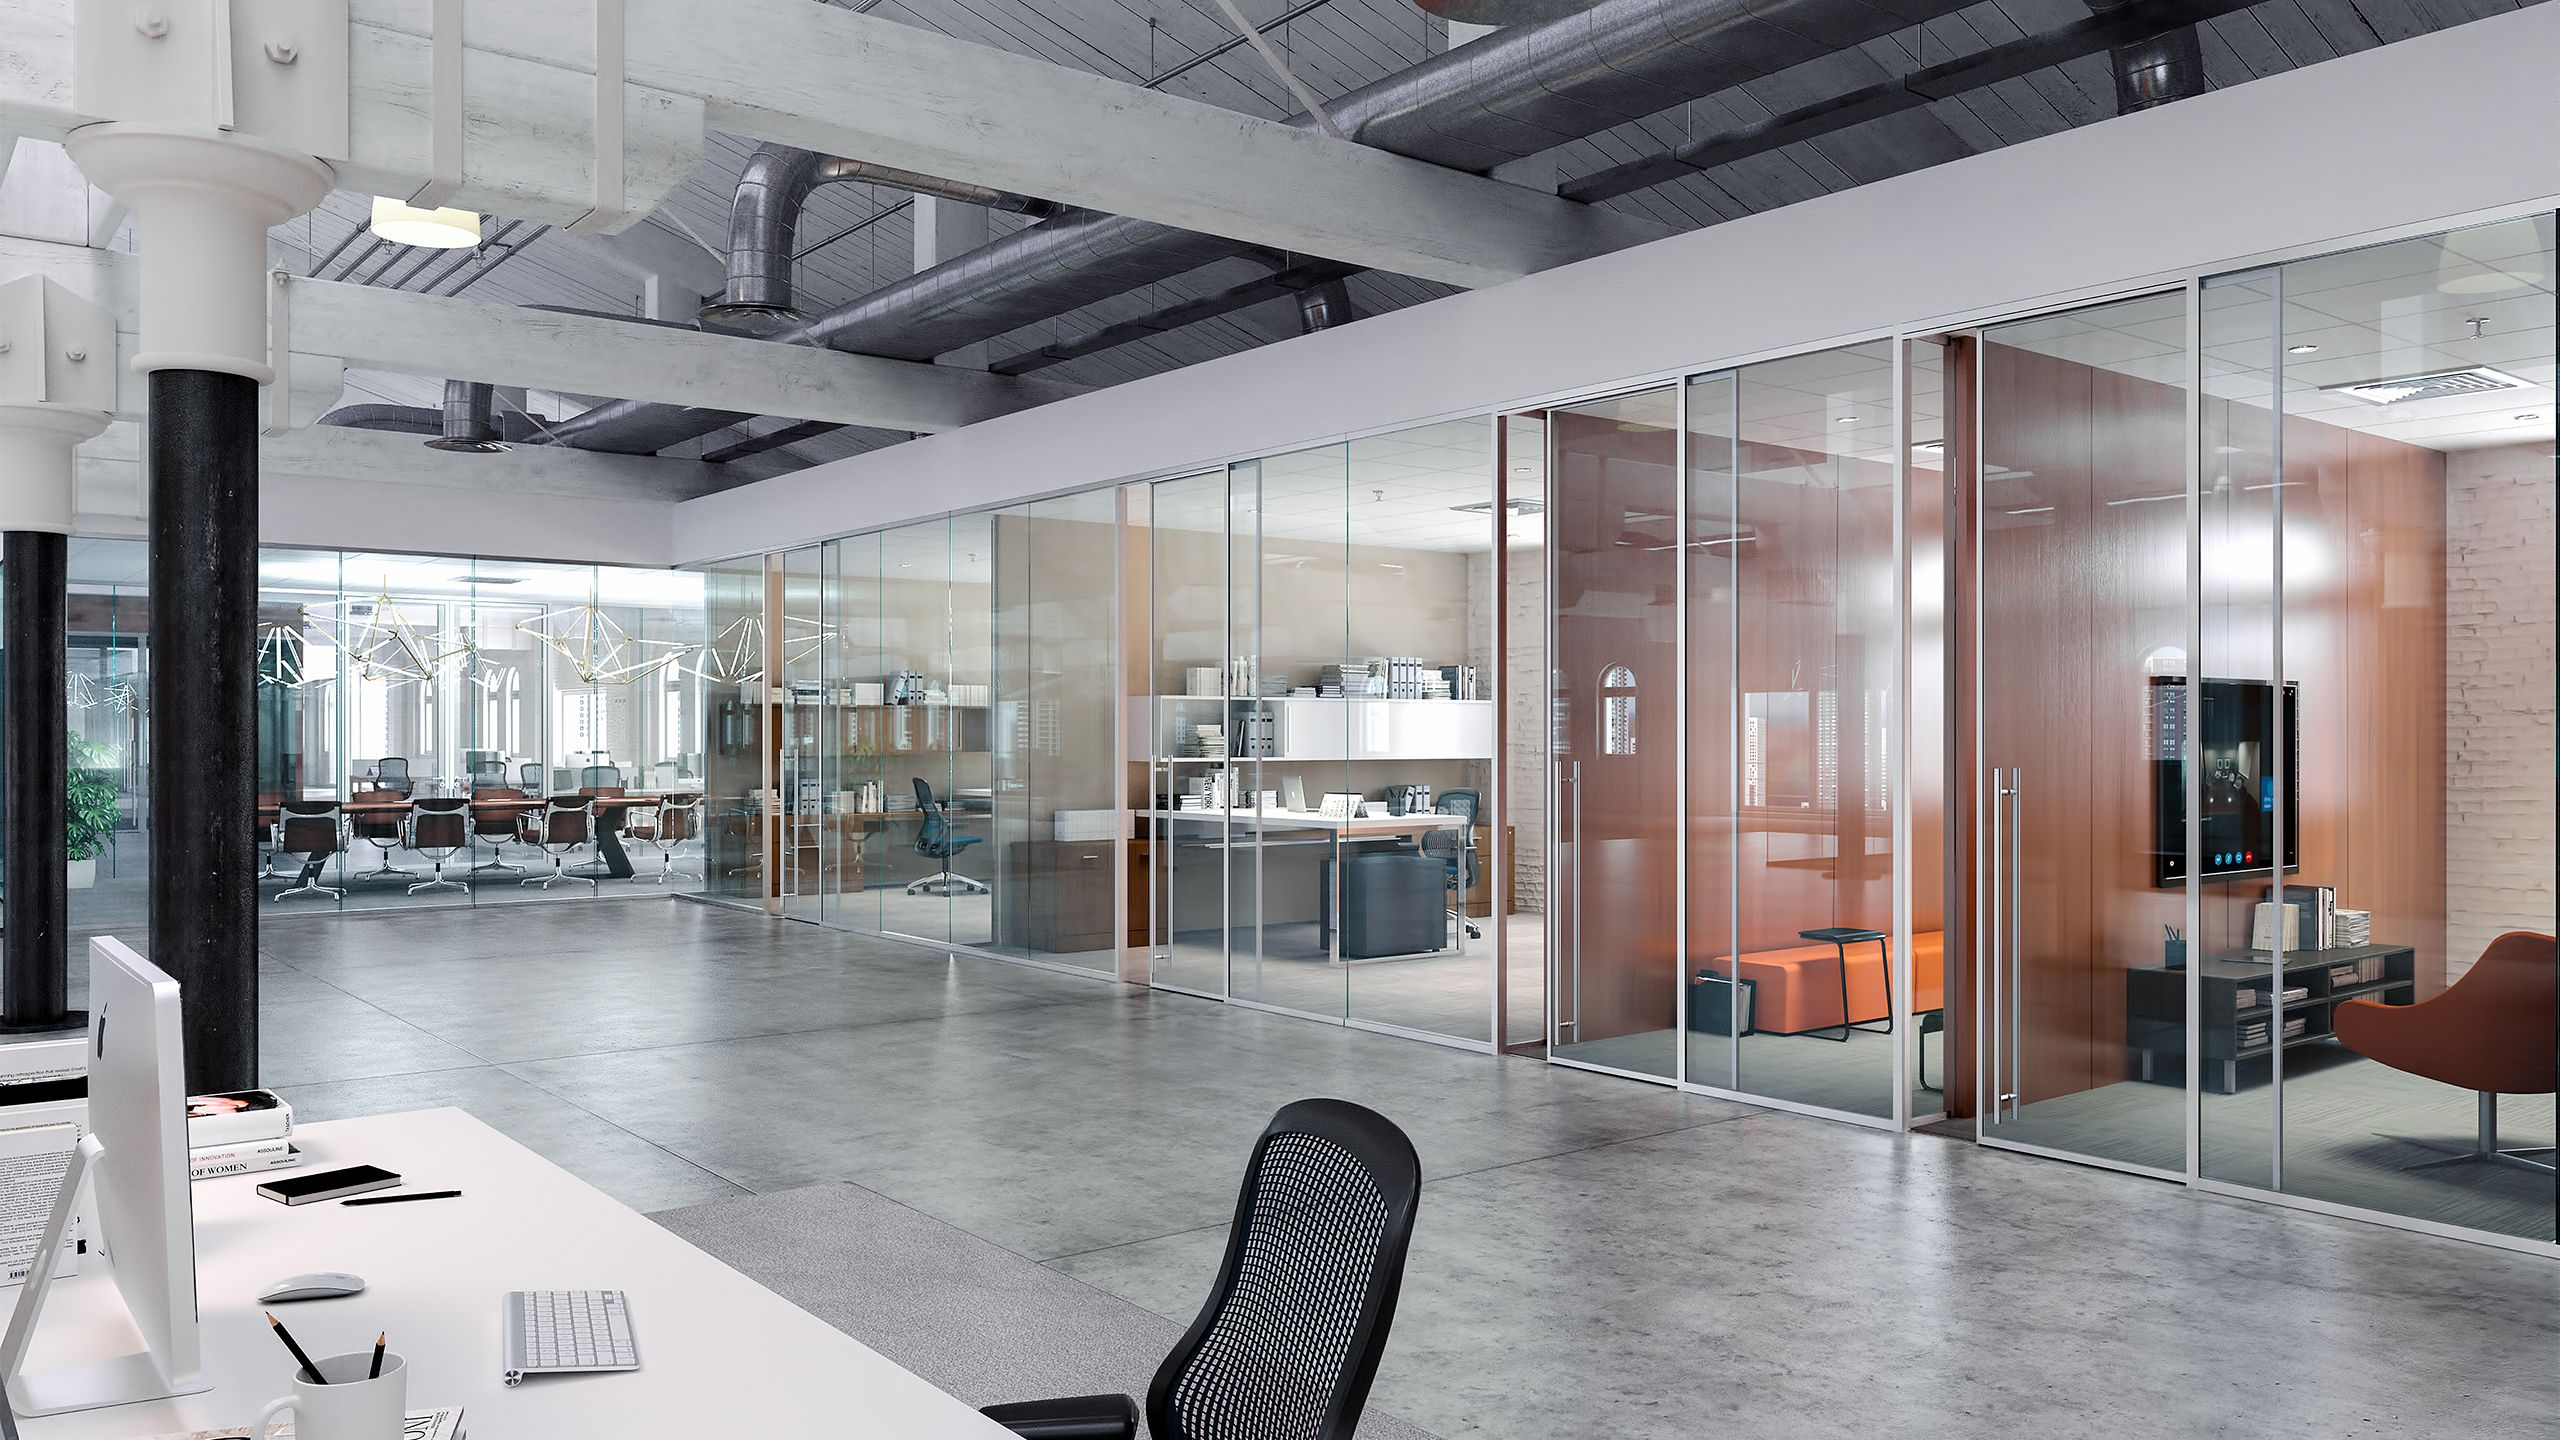 inspirational office spaces. Modernus Lama - Inspirational Office Spaces Inspirational W